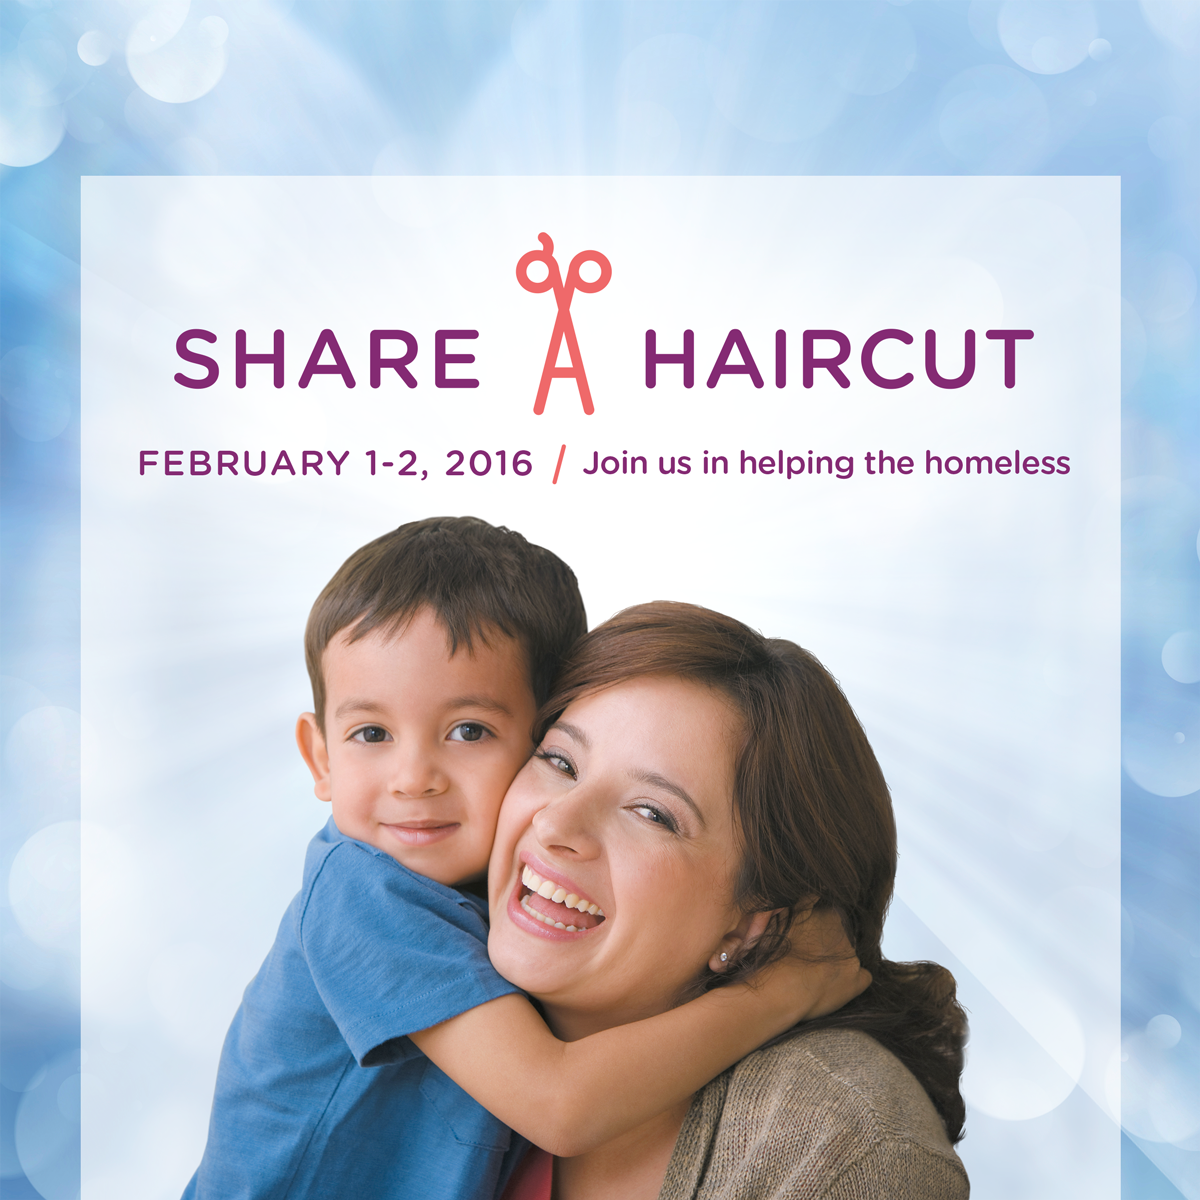 On February 1 and 2, get your hair cut at a Hair Cuttery Salon and they will donate a haircut to a homeless person in your area